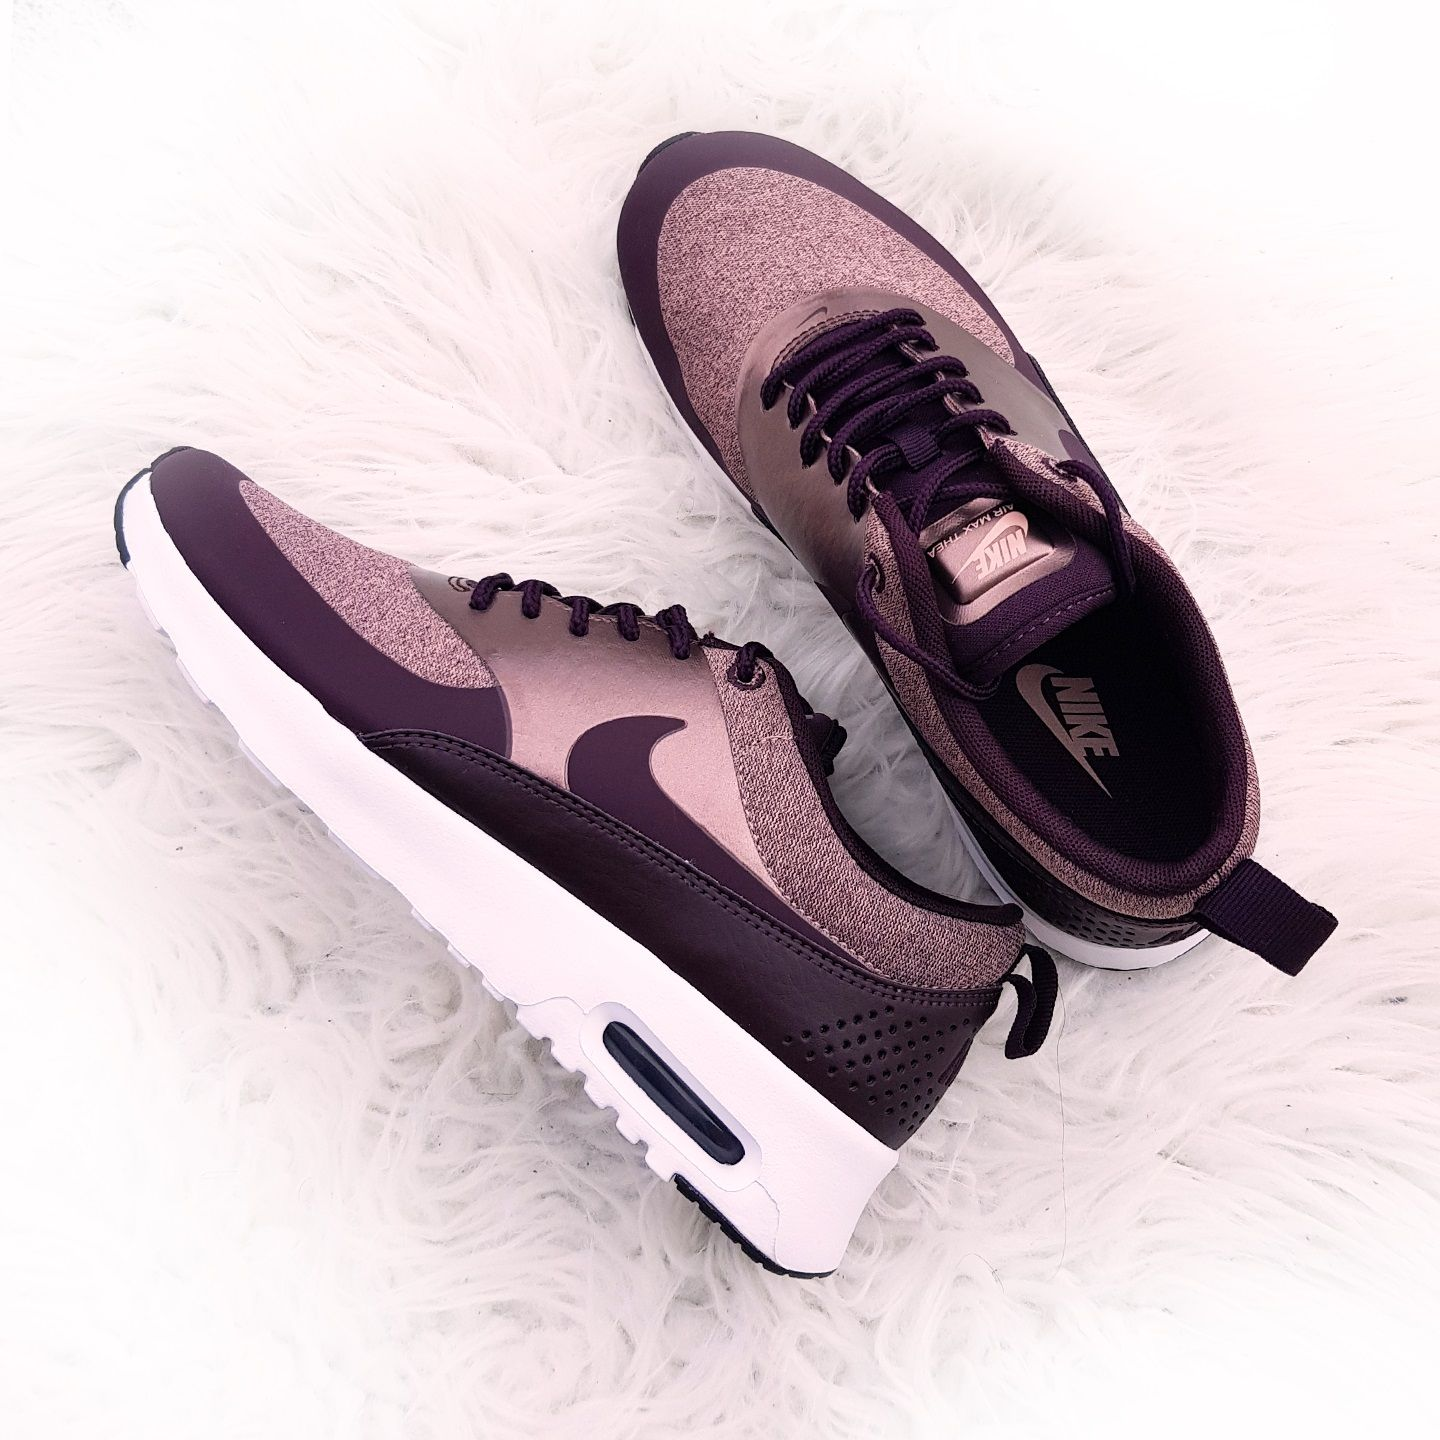 pick up d8dfc cda70 Nike Air Max Thea Knit - Port Wine Particle Pink Schwarz Metallic Mahogany